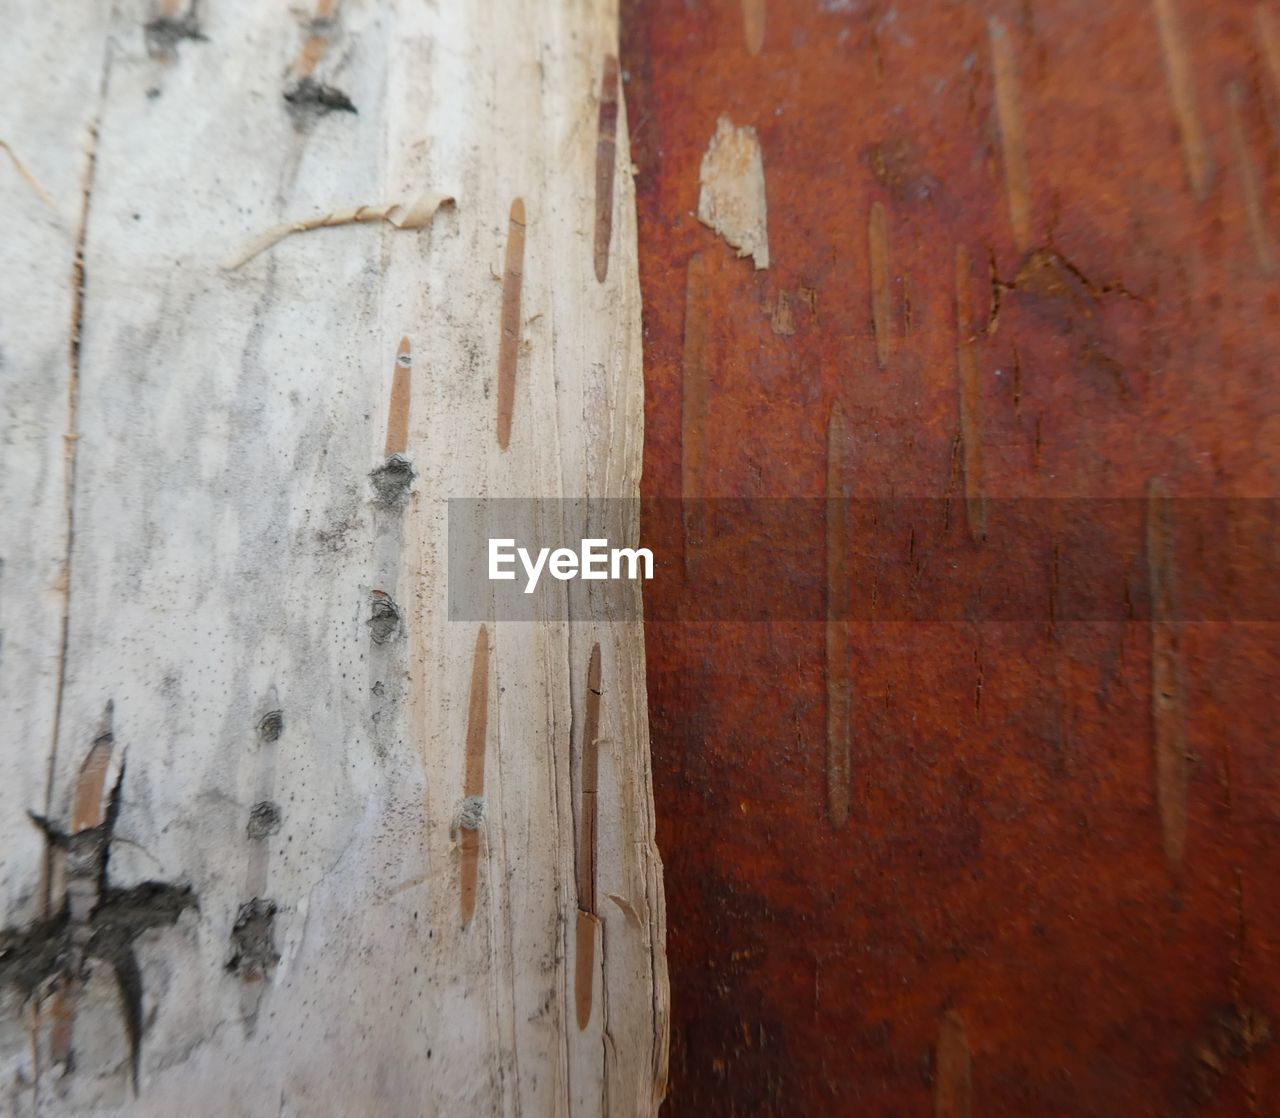 wood - material, textured, full frame, weathered, backgrounds, close-up, brown, no people, old, metal, run-down, pattern, wall - building feature, damaged, rusty, rough, deterioration, day, decline, built structure, wood, wood grain